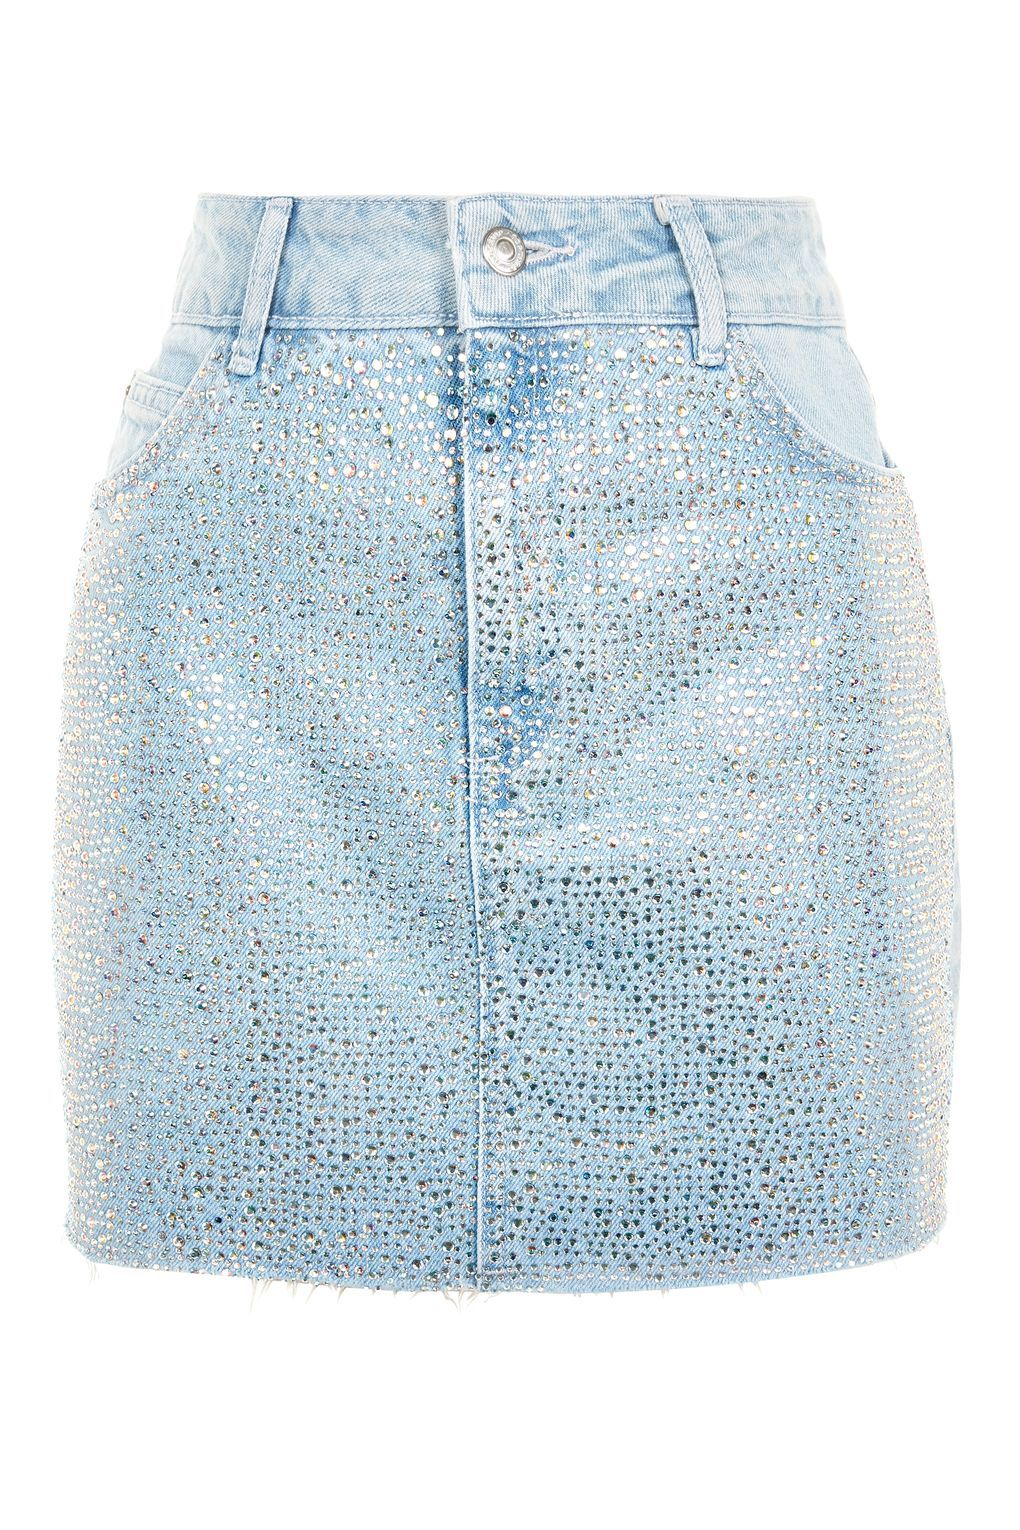 42dfdd3647 Diamante Denim Skirt in 2019 | Jeans | Denim skirt, Denim, Fashion